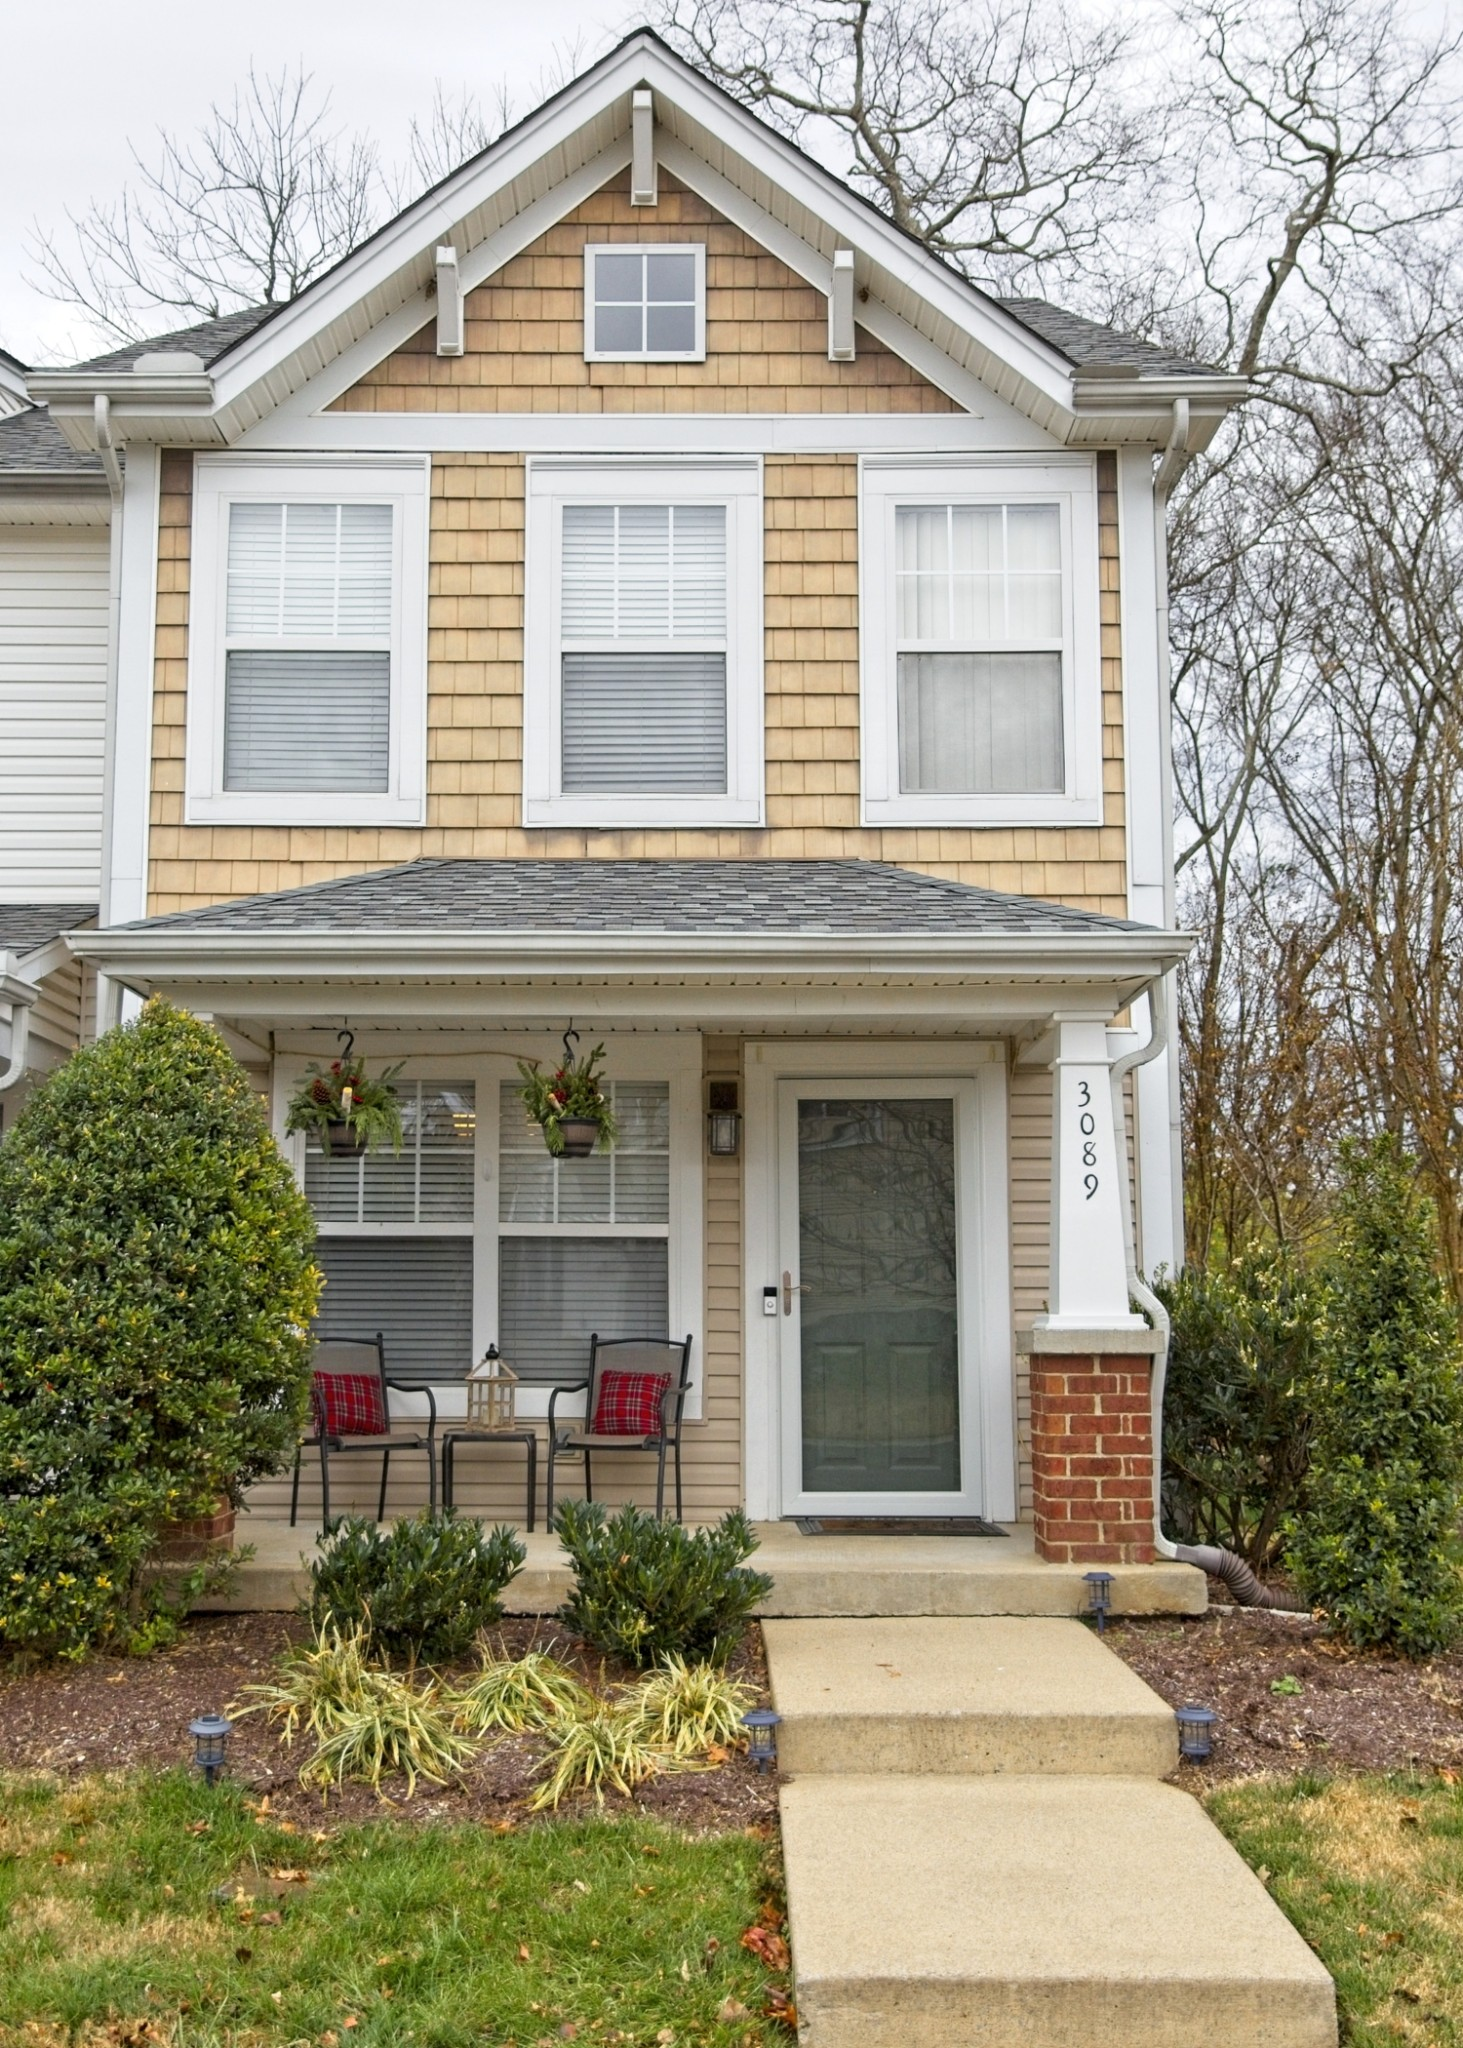 Wonderful 2Bd/2.5BA Nashville end unit townhome with new stainless steel appliances and new LVP flooring downstairs. Private baths for each bedroom. Updated lighting and fresh paint.  Private back area with sunny back patio and large storage area.  This home is just minutes away from Bellevue shopping center, new Ford Ice Center and nearby restaurants.  Enjoy the beautiful walking trails nearby!